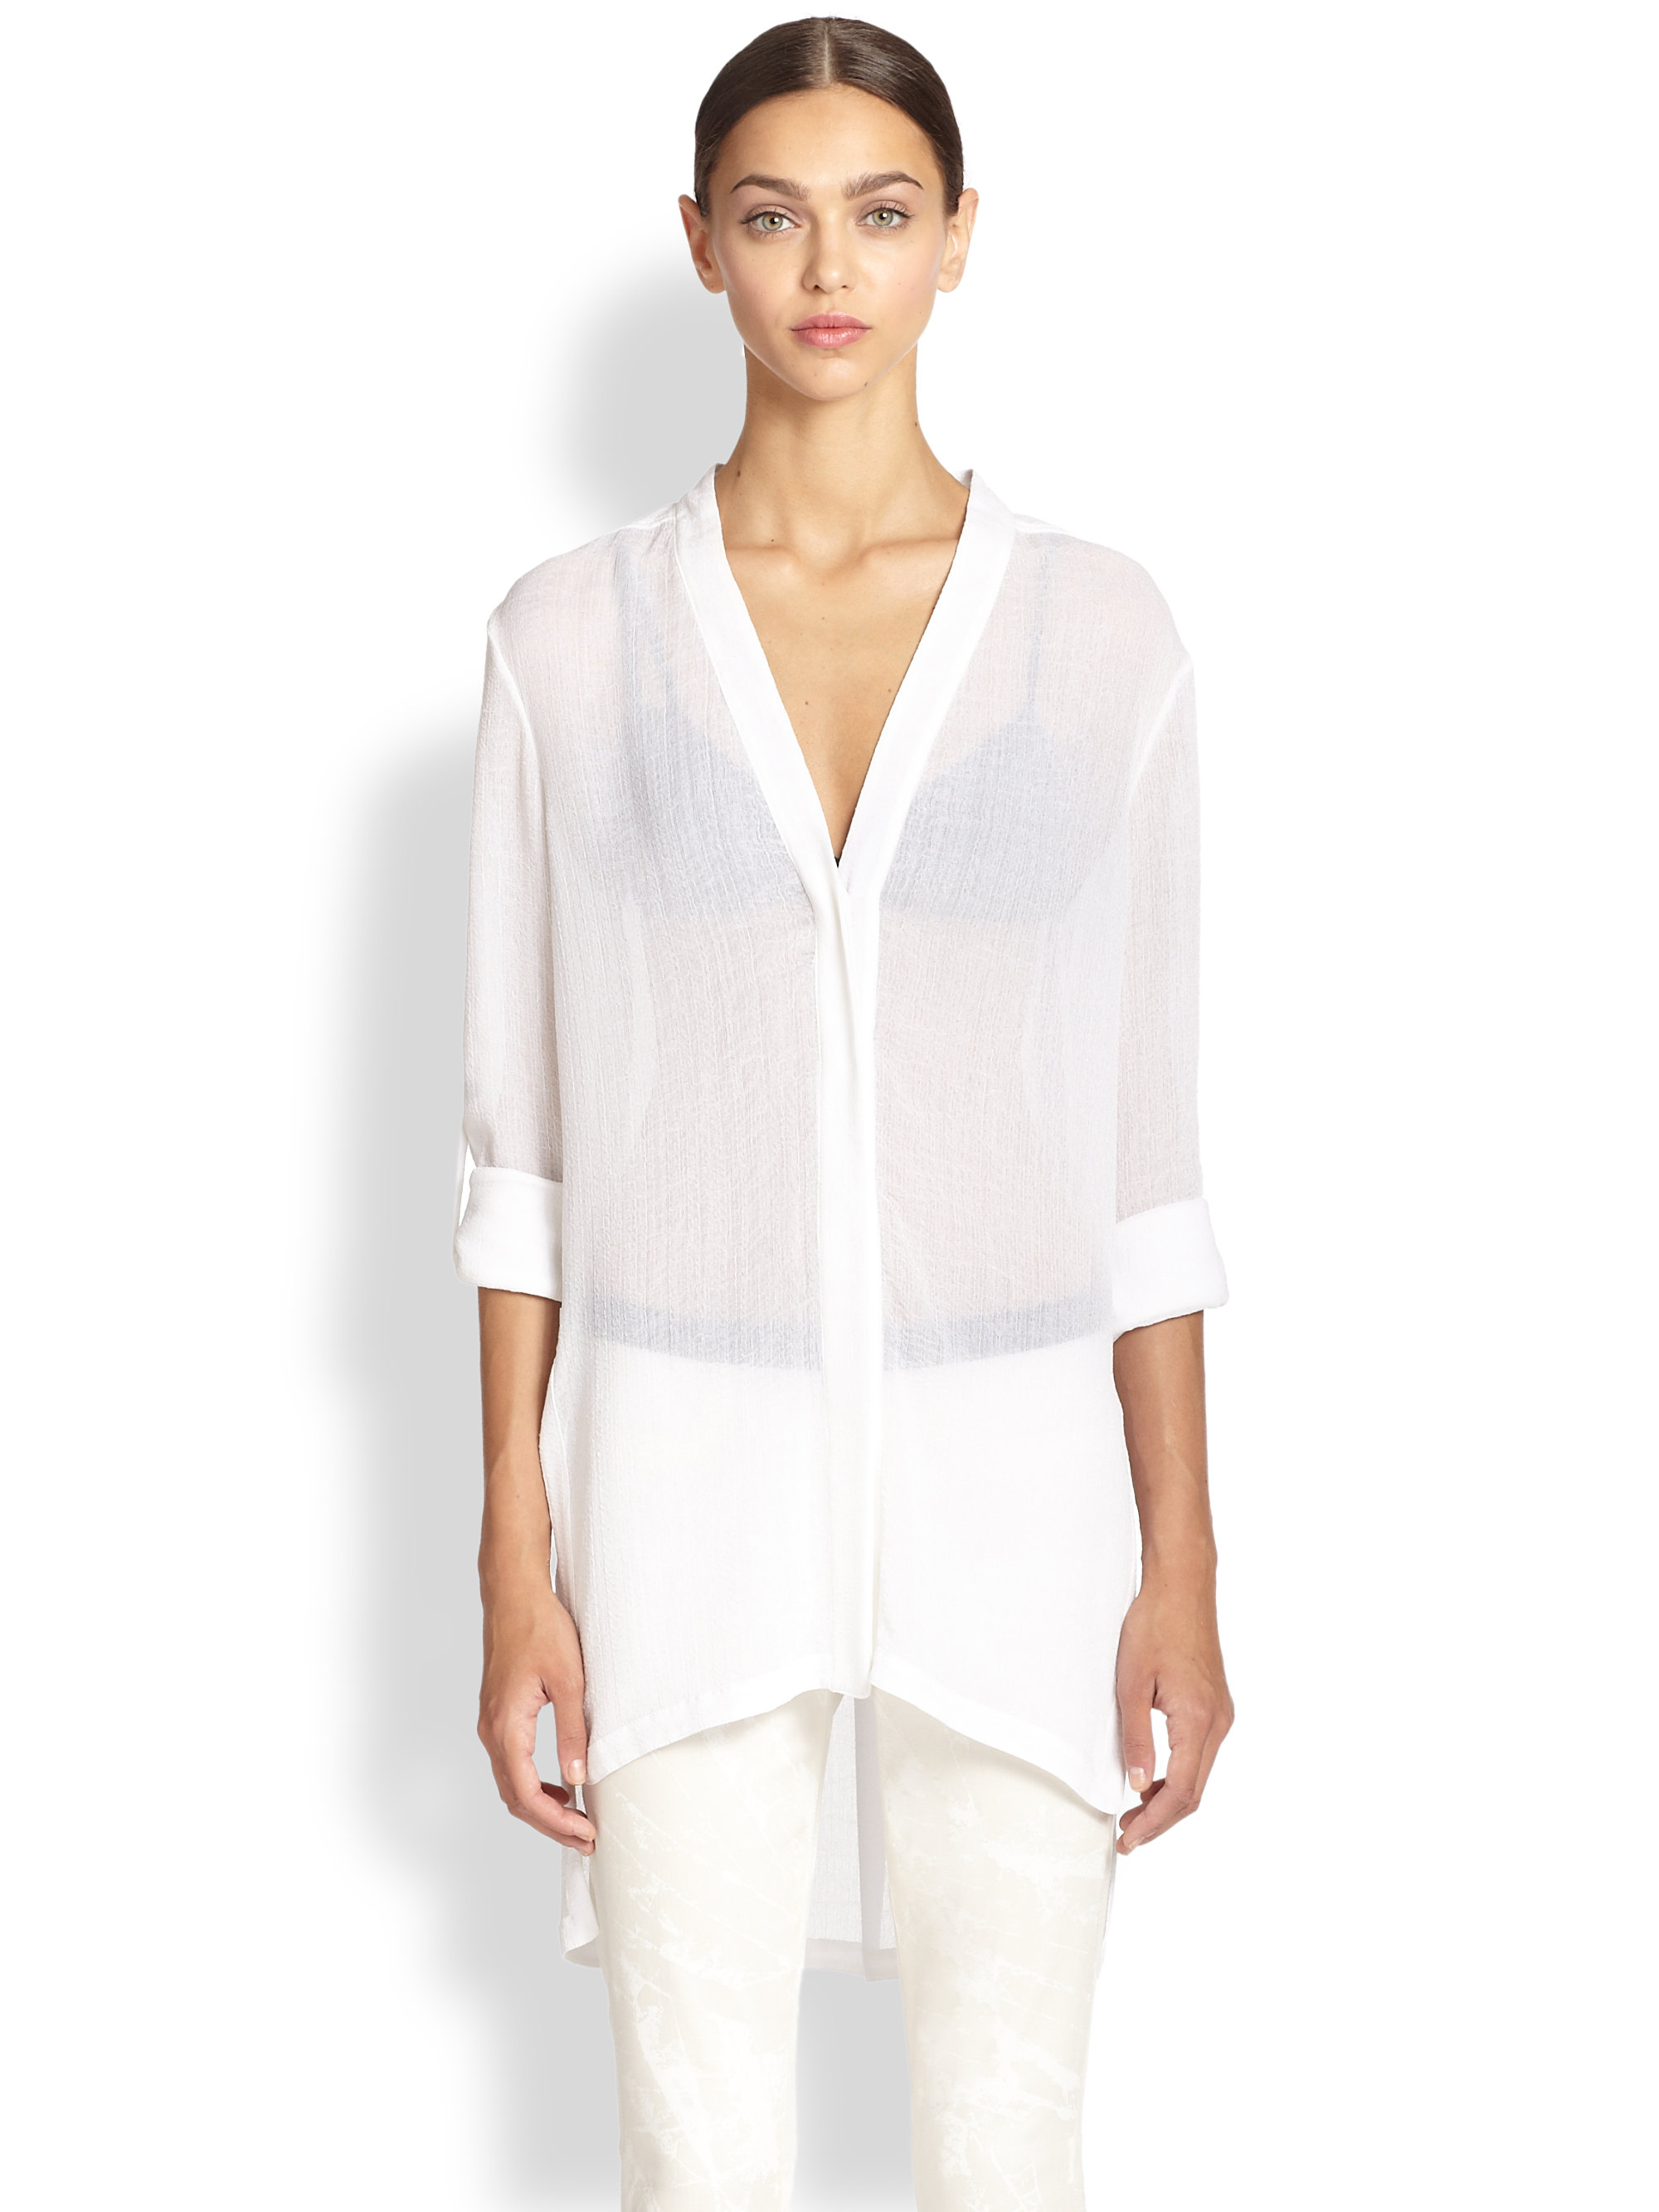 bfb256c0899e48 Lyst - Helmut Lang Swift Tunic Blouse in White